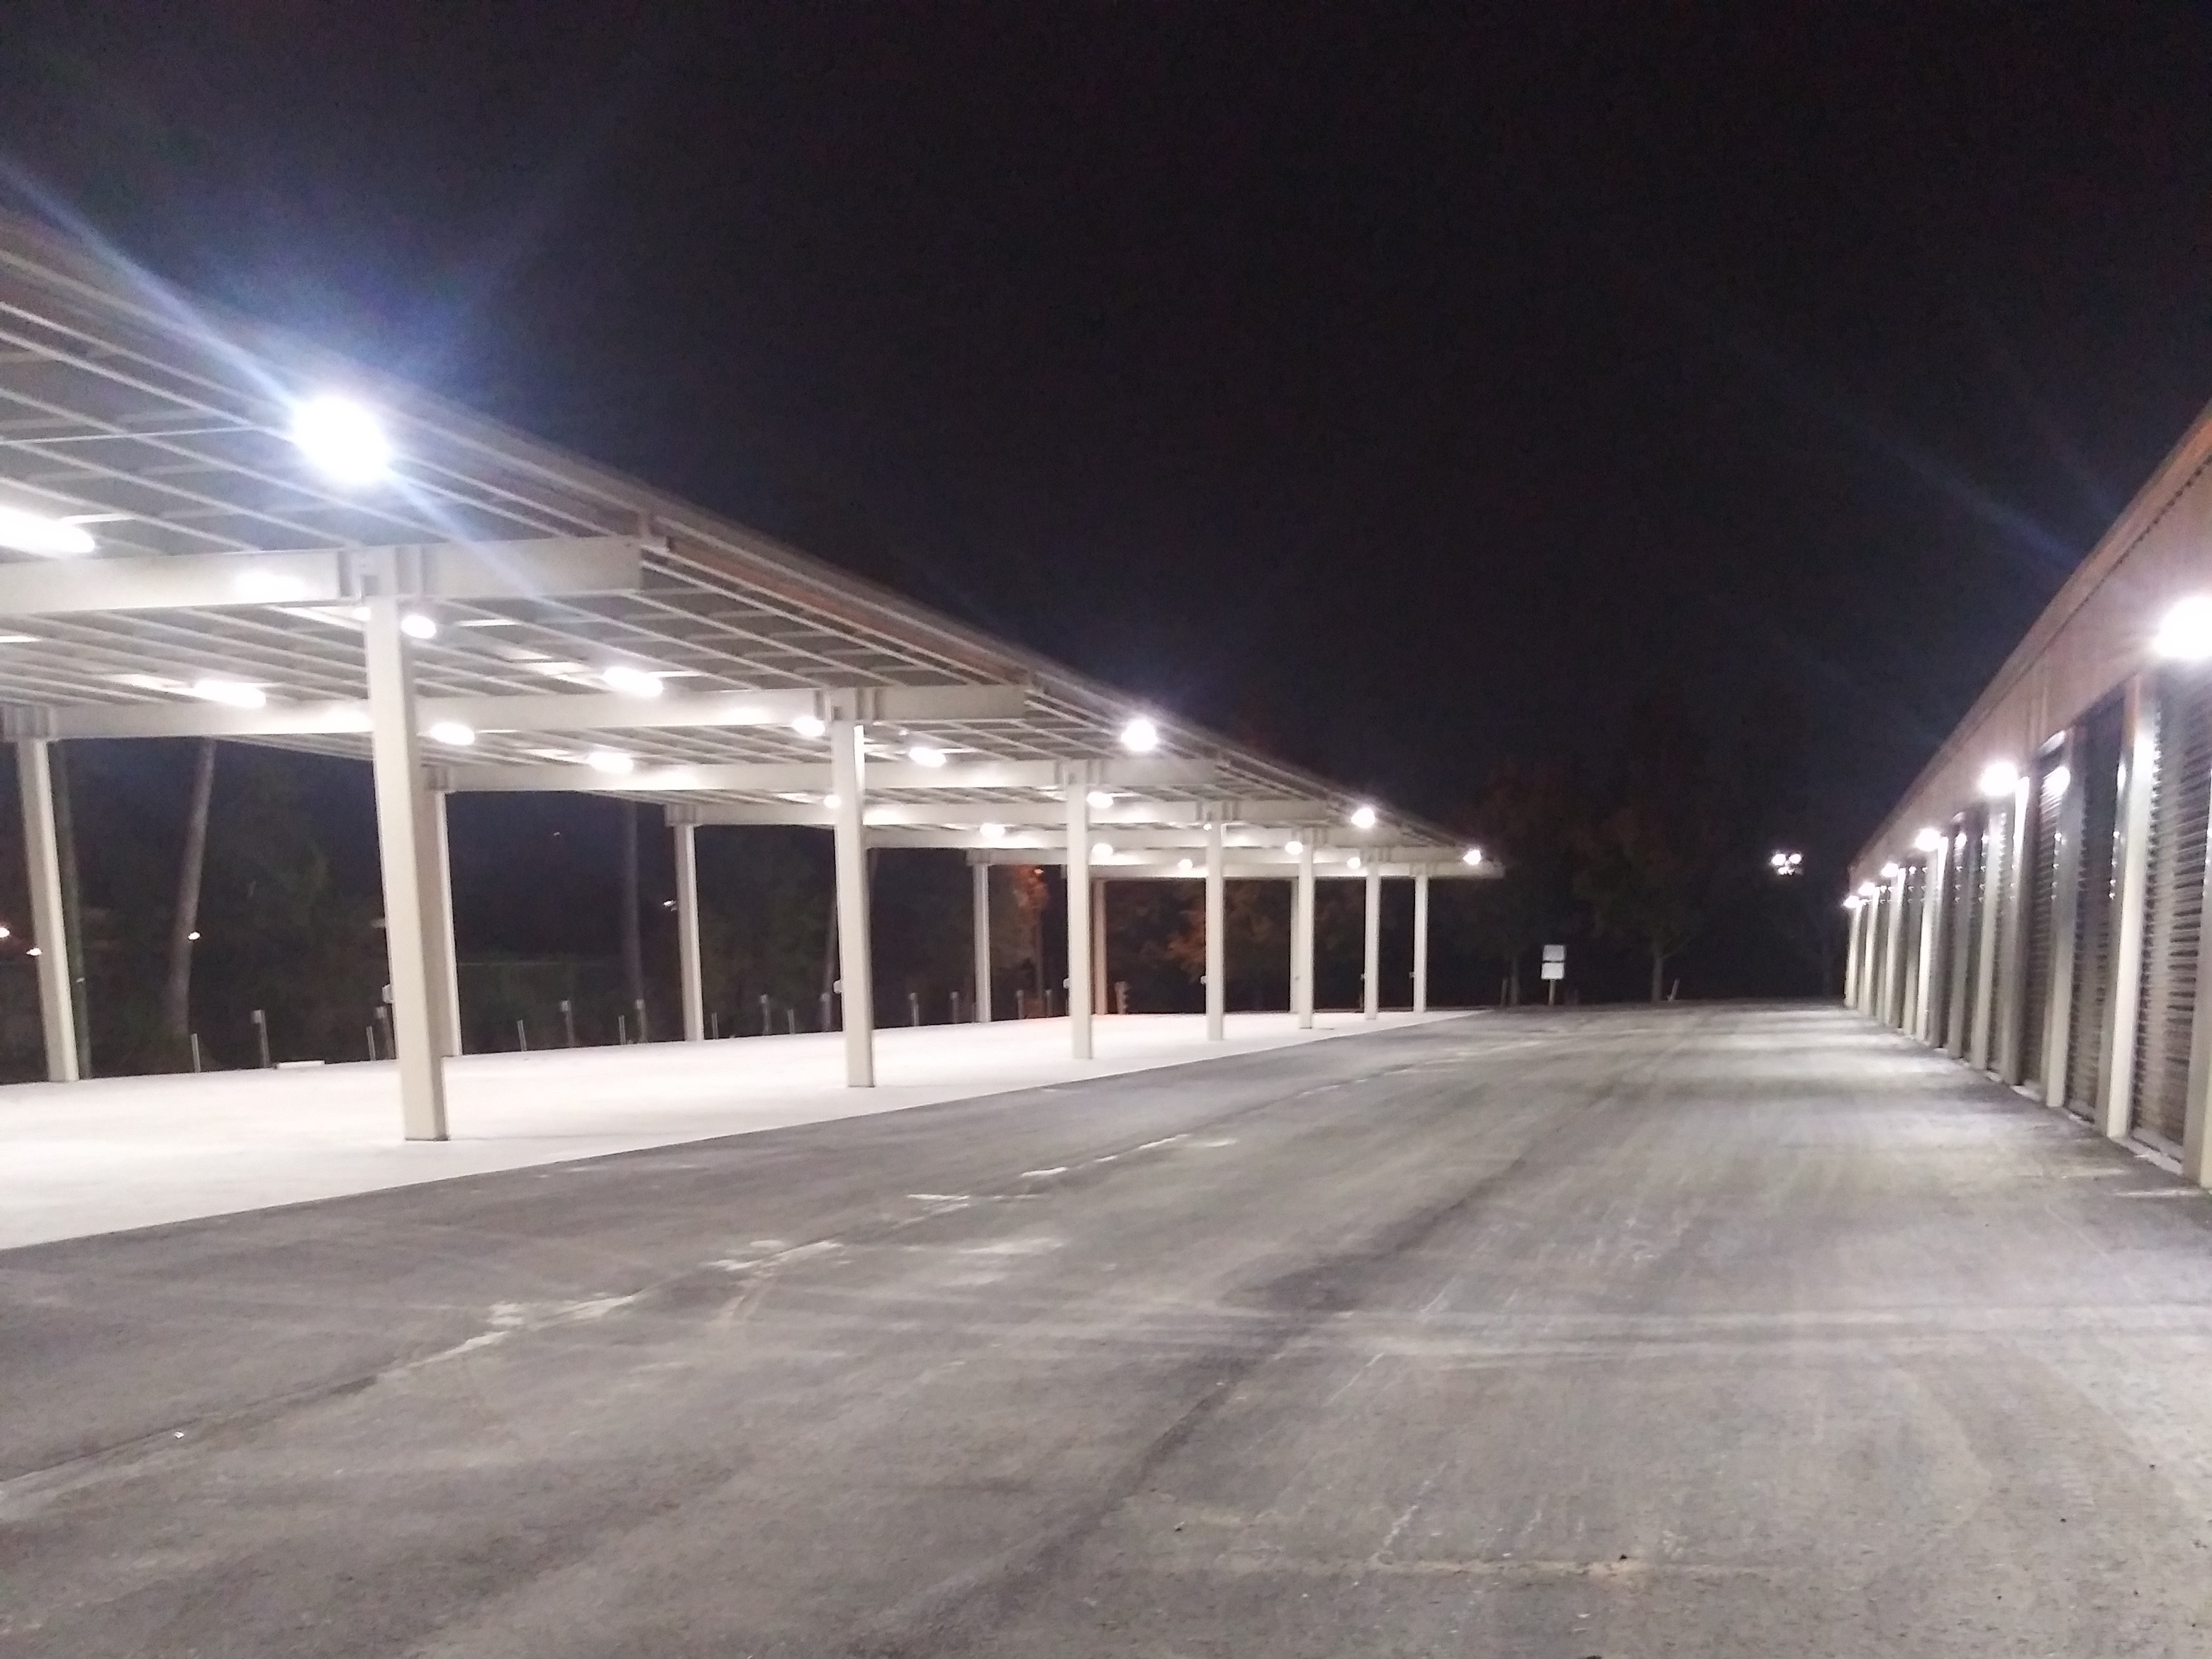 drive up storage units at night